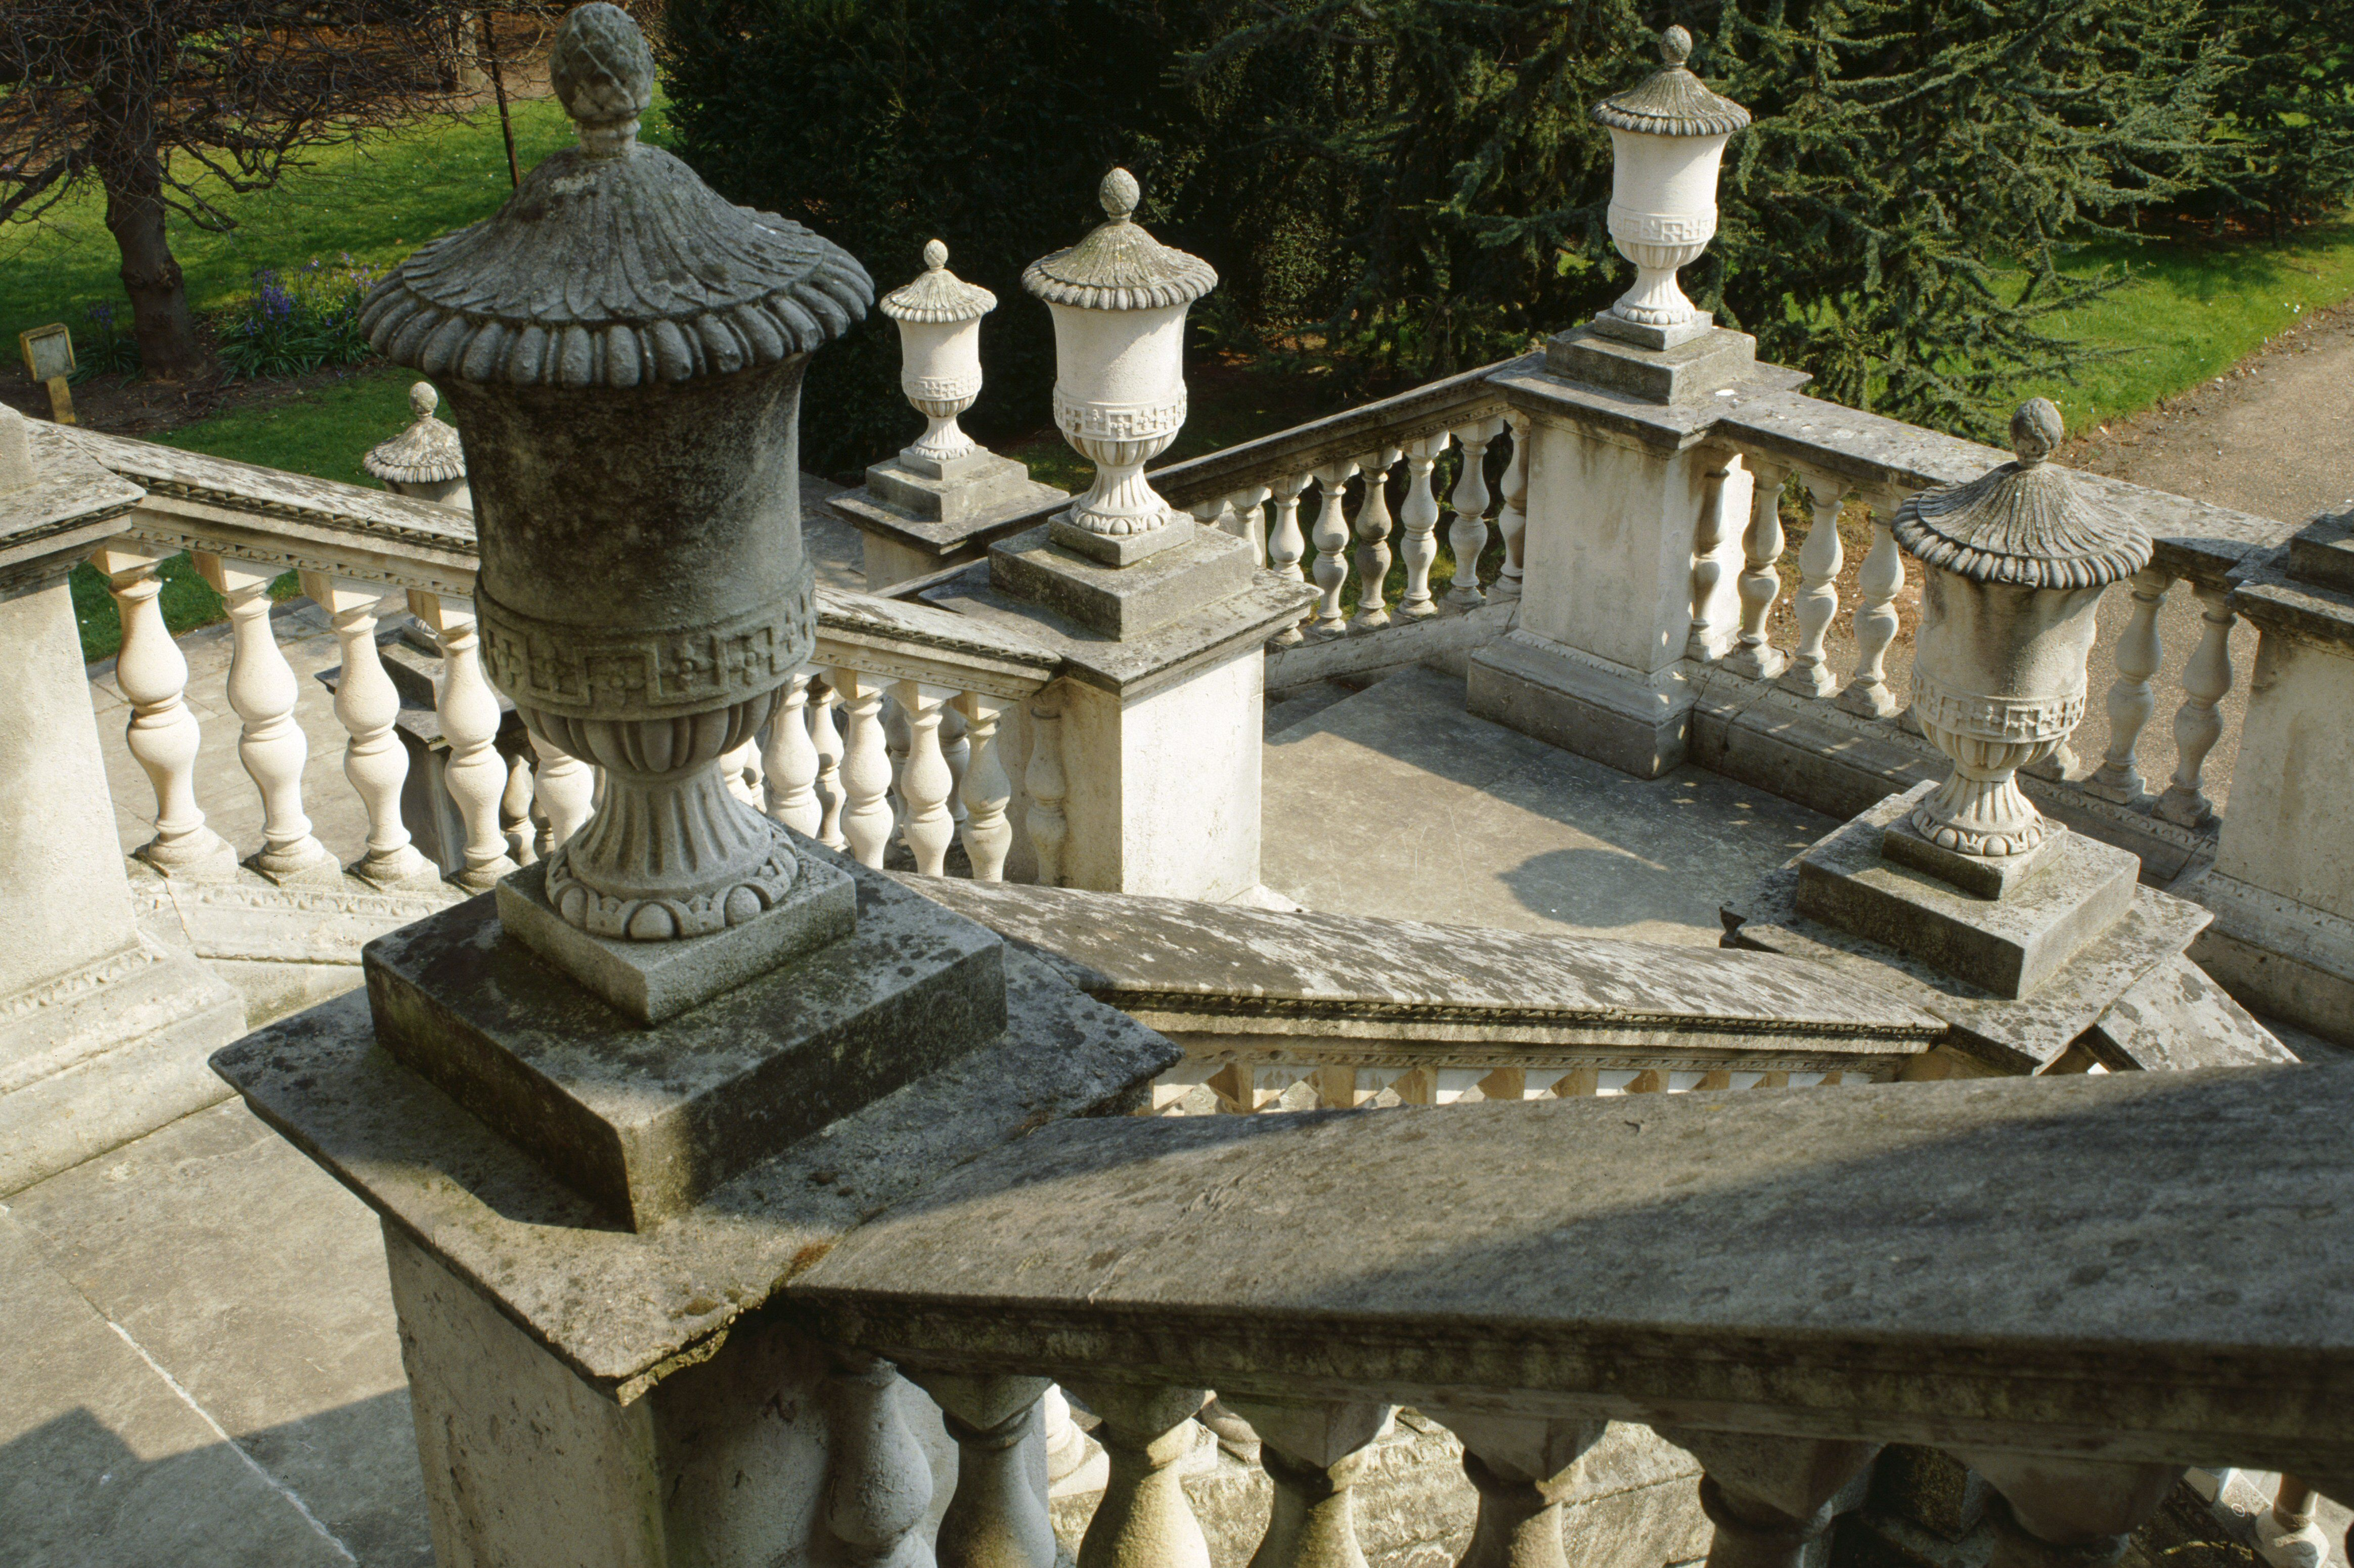 View looking down the entrance steps from the portico of Chiswick House in England